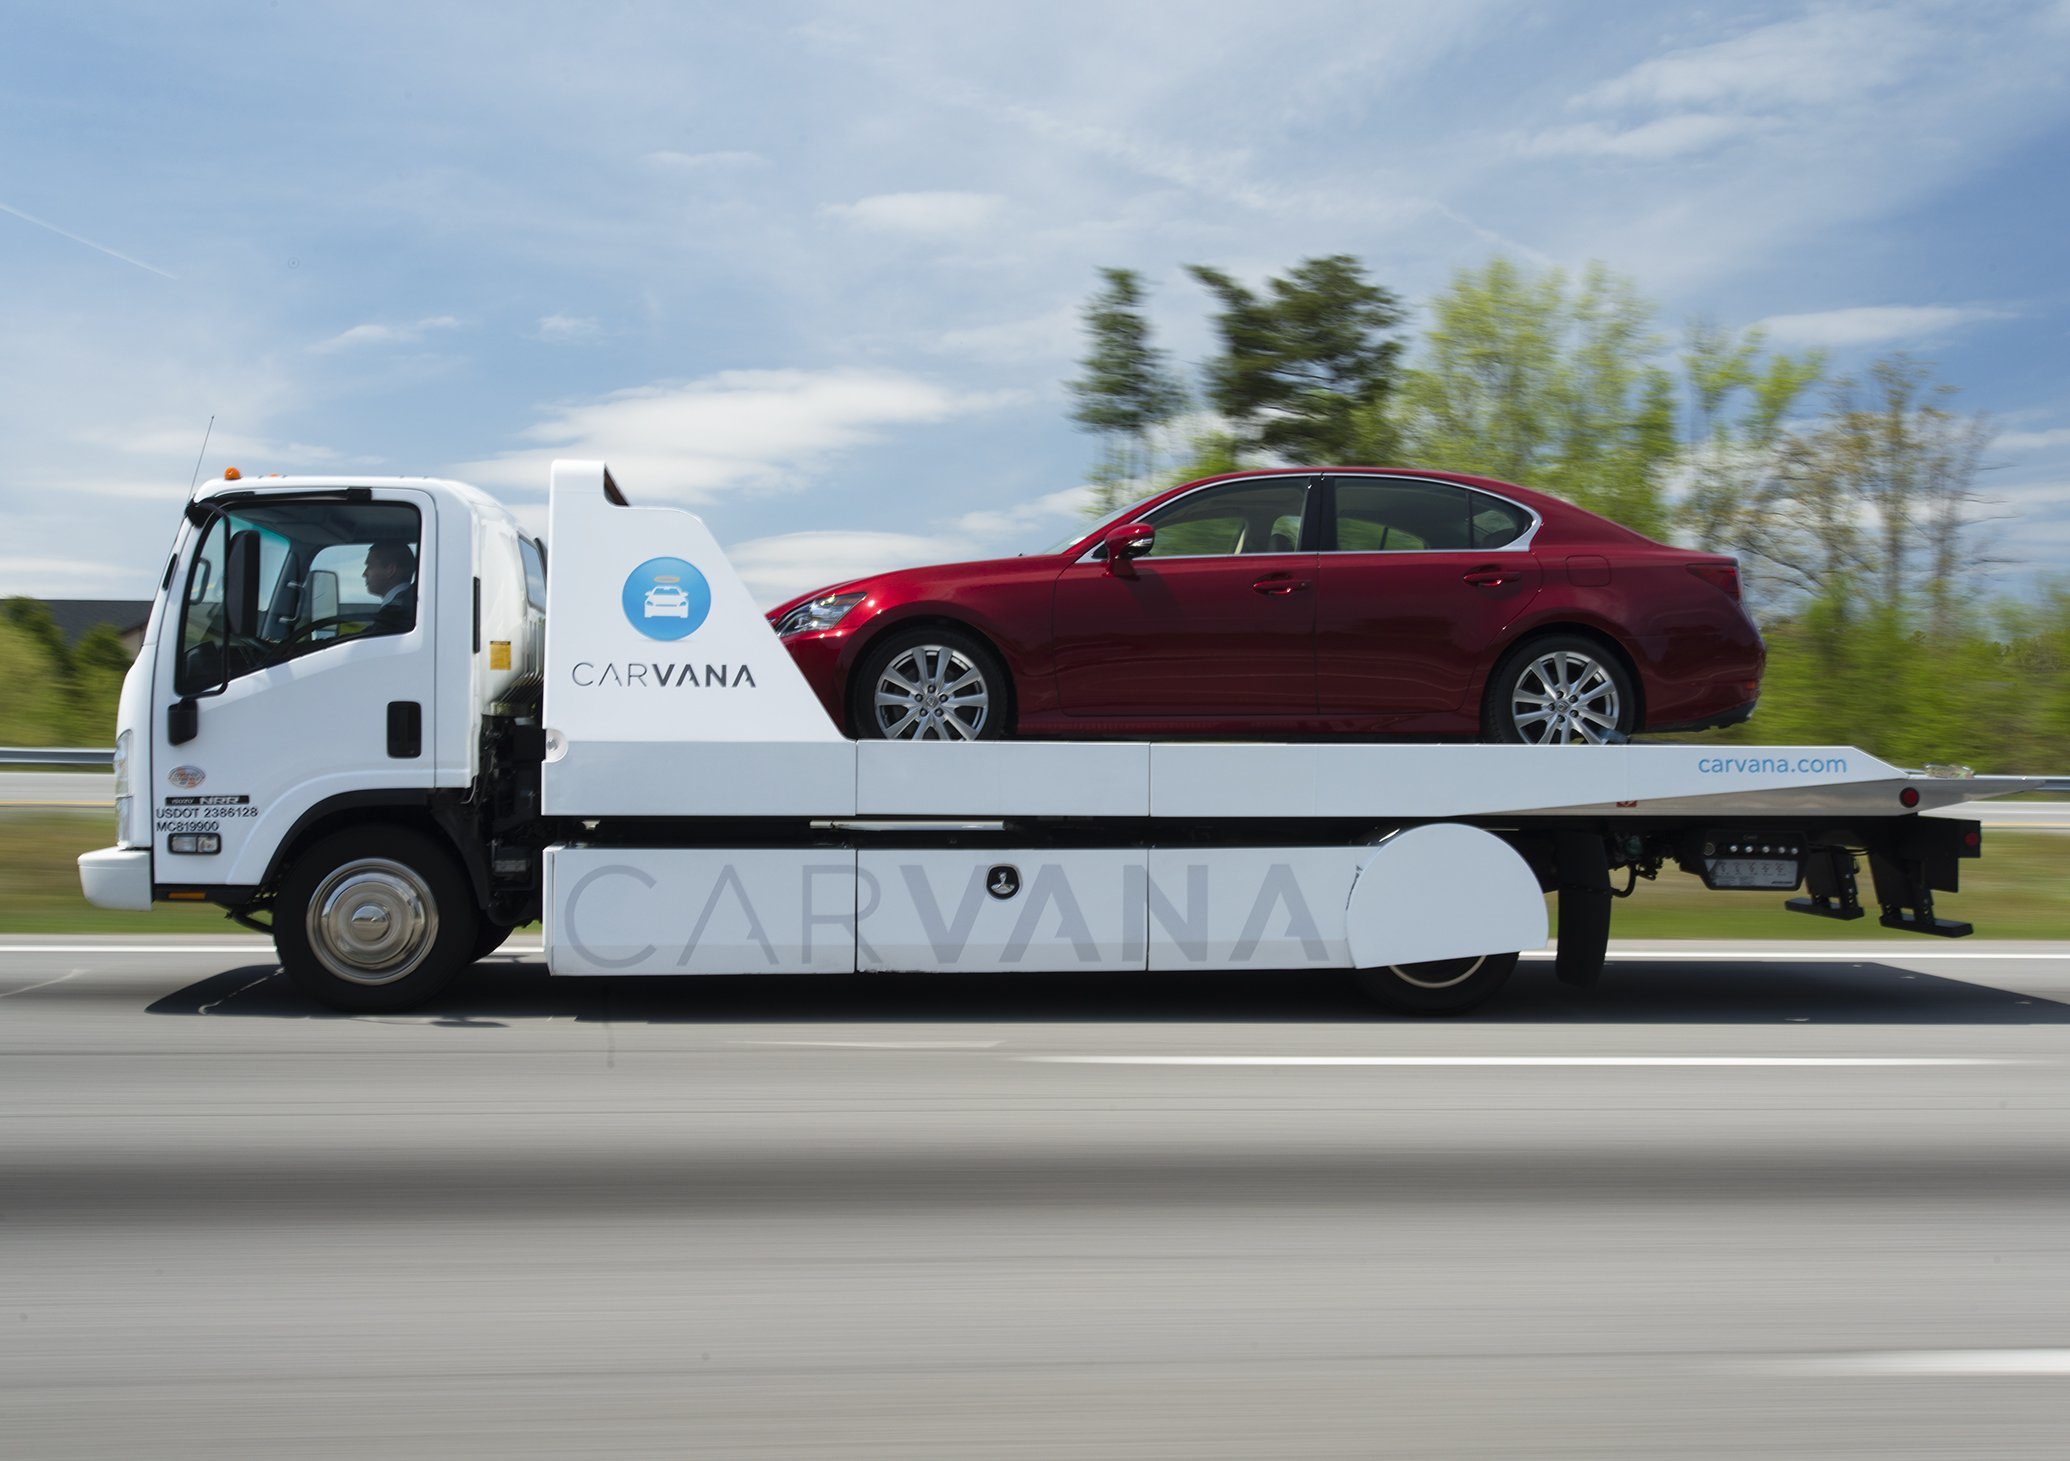 Save $1000 on your next car purchase from Carvana and get one of the best Cyber Monday travel deals of 2017.